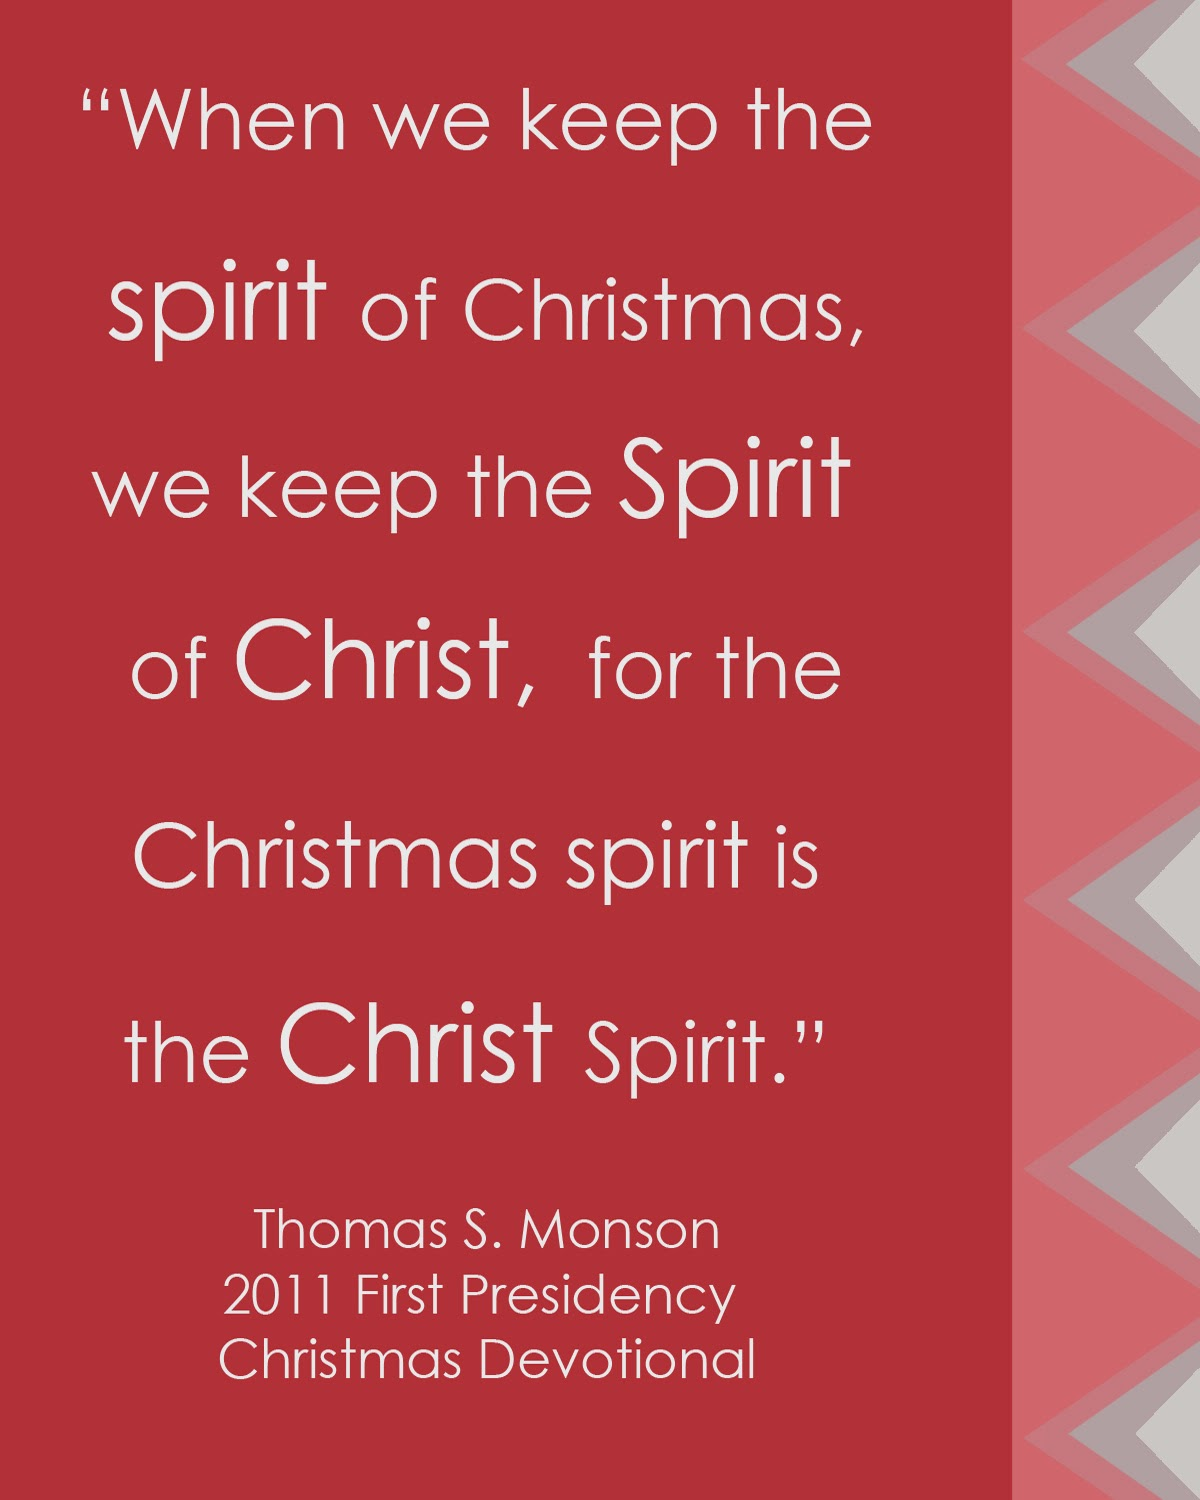 And peace that come with christmas are from our savior jesus christ